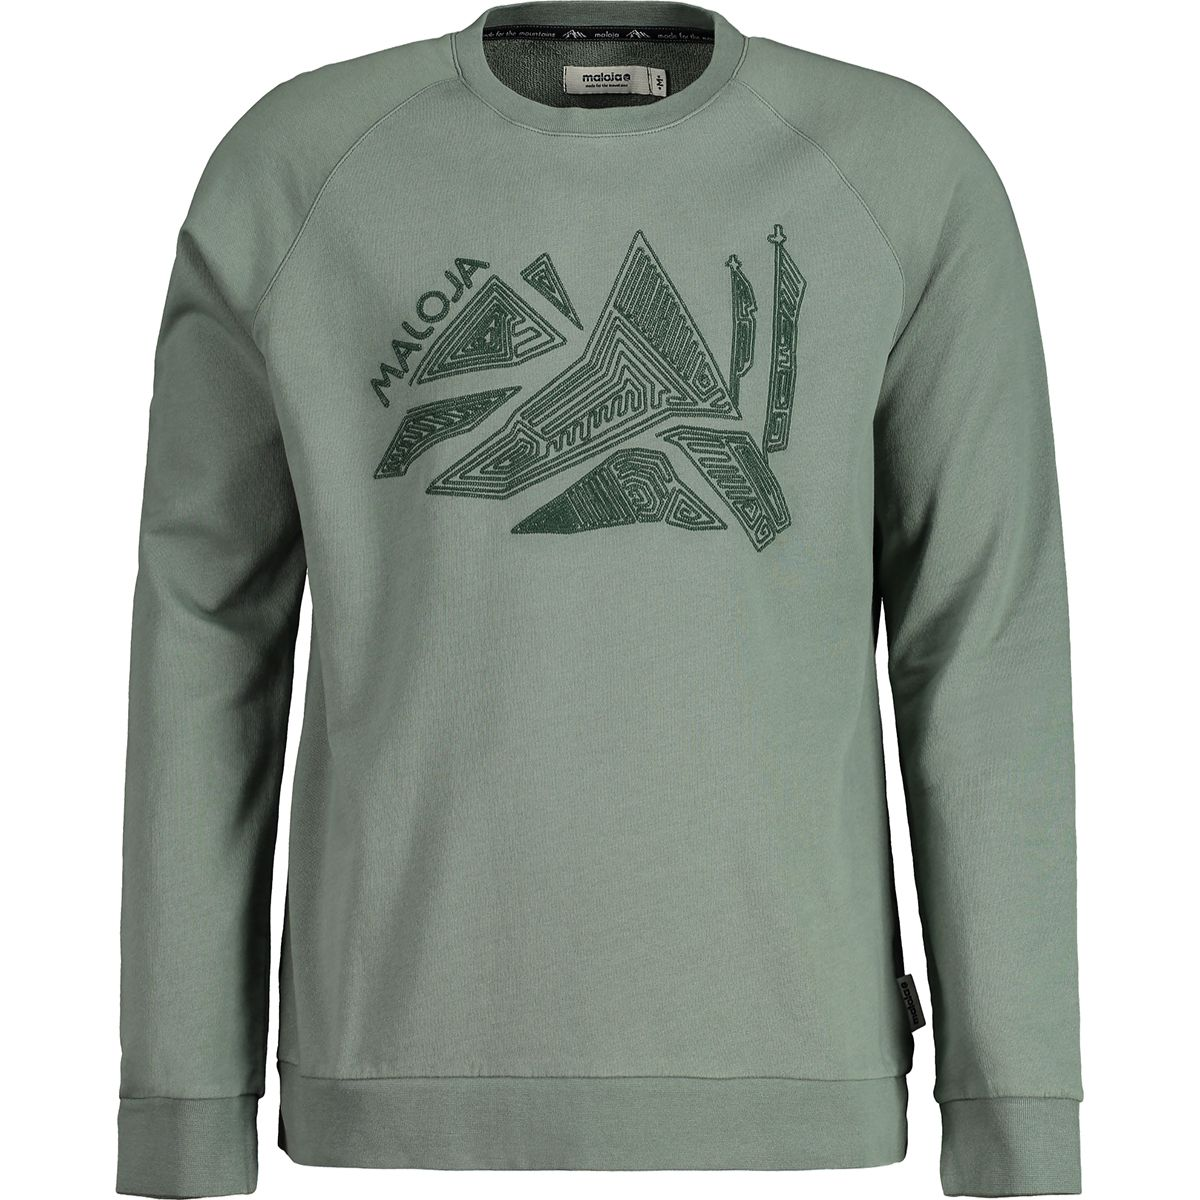 Maloja sweater